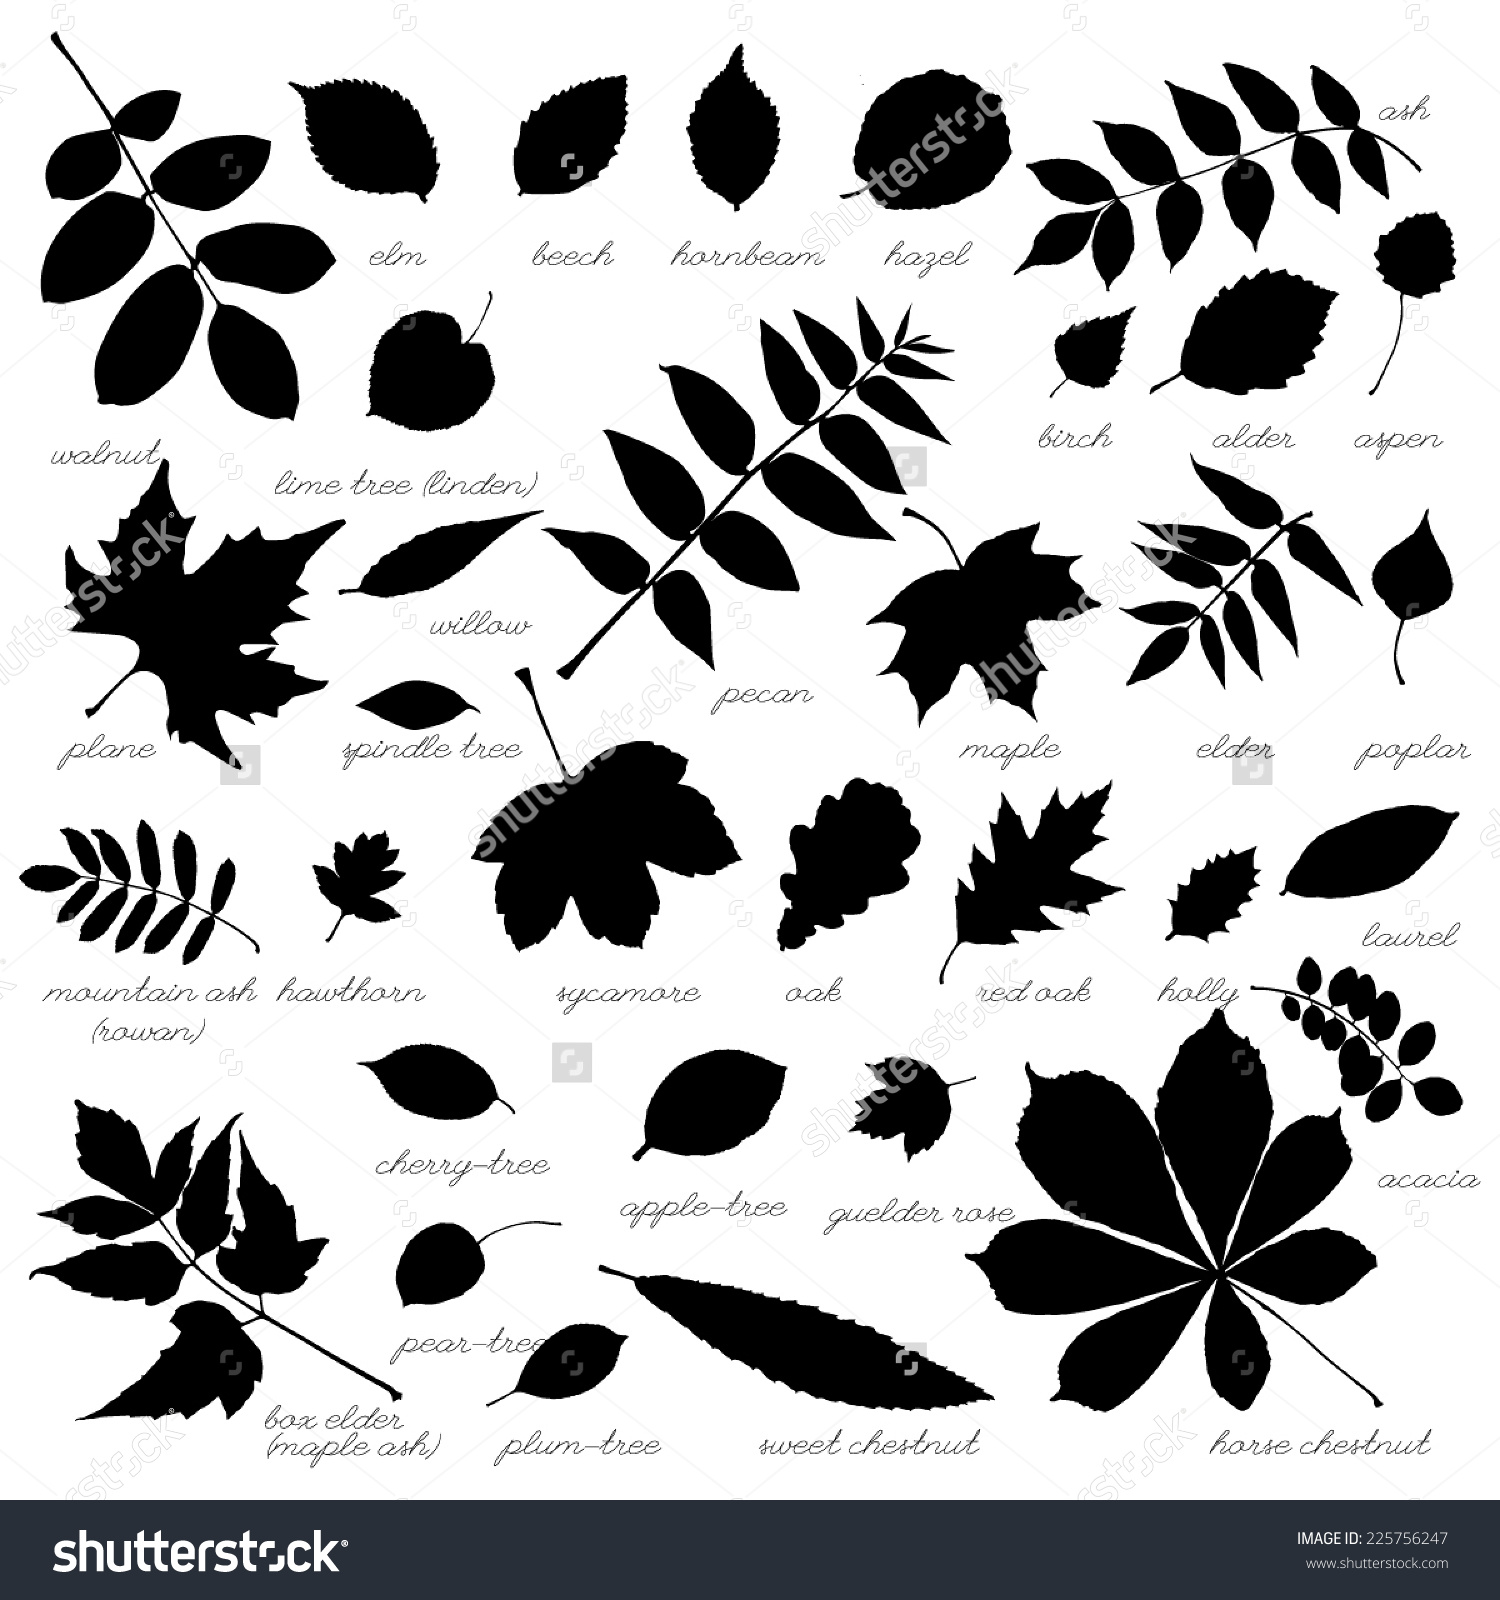 Silhouettes Tree Leaves Elm Beech Ash Stock Vector 225756247.